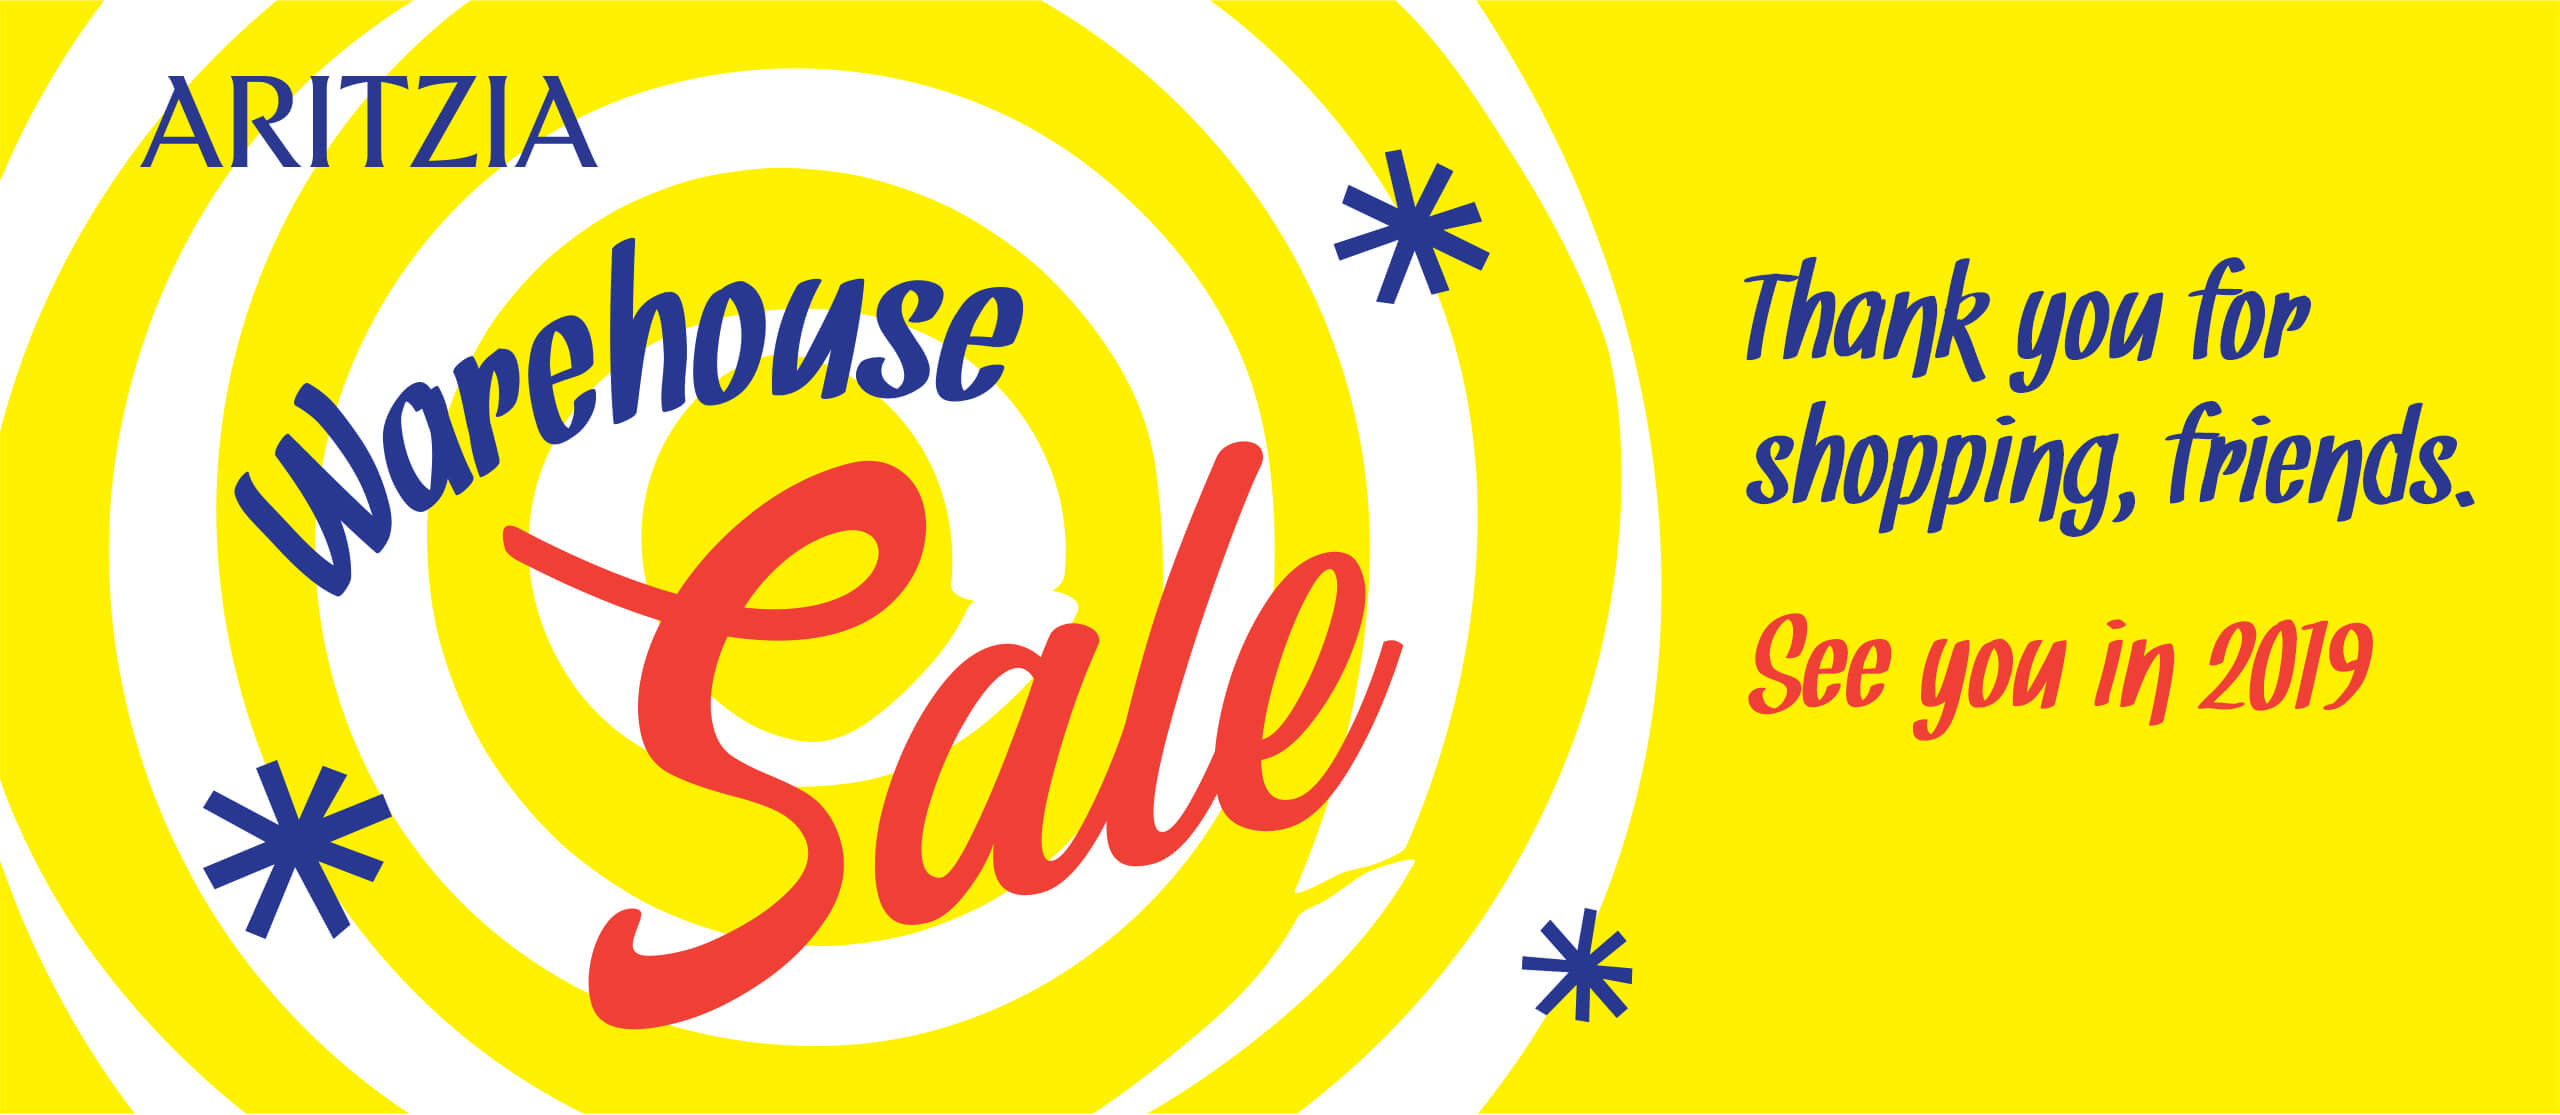 Warehouse Sale: See you in 2019